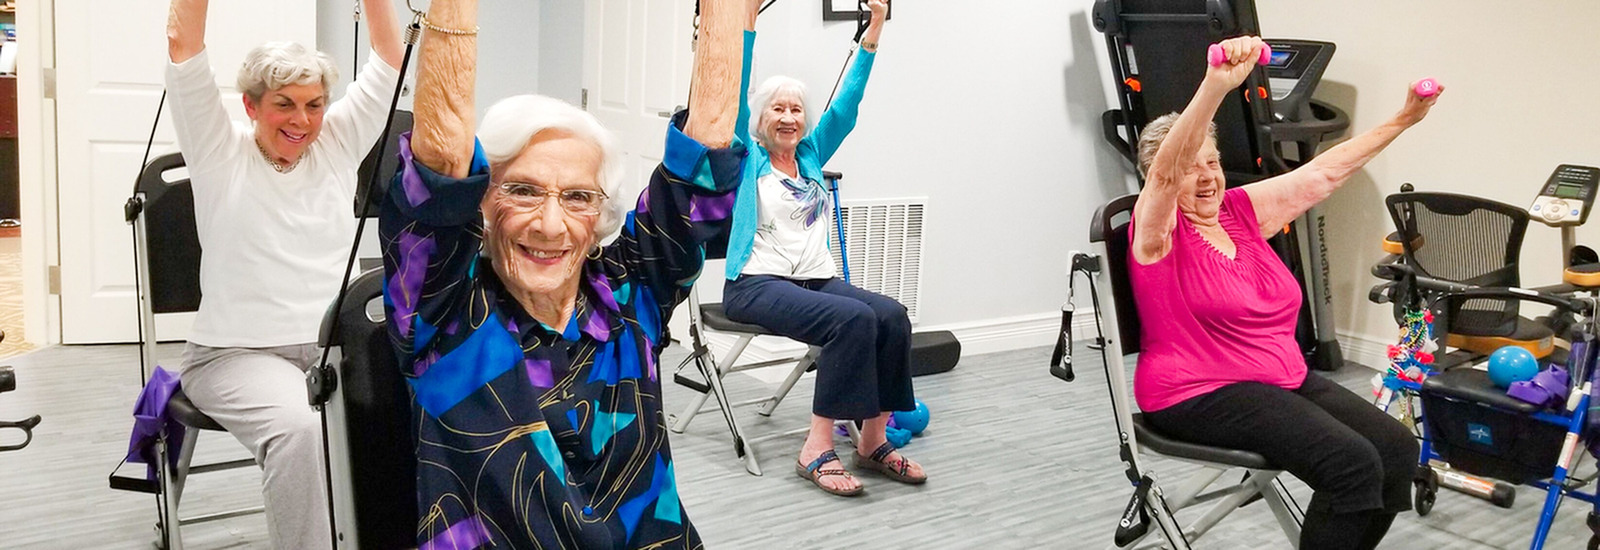 Four older women exercising in chairs